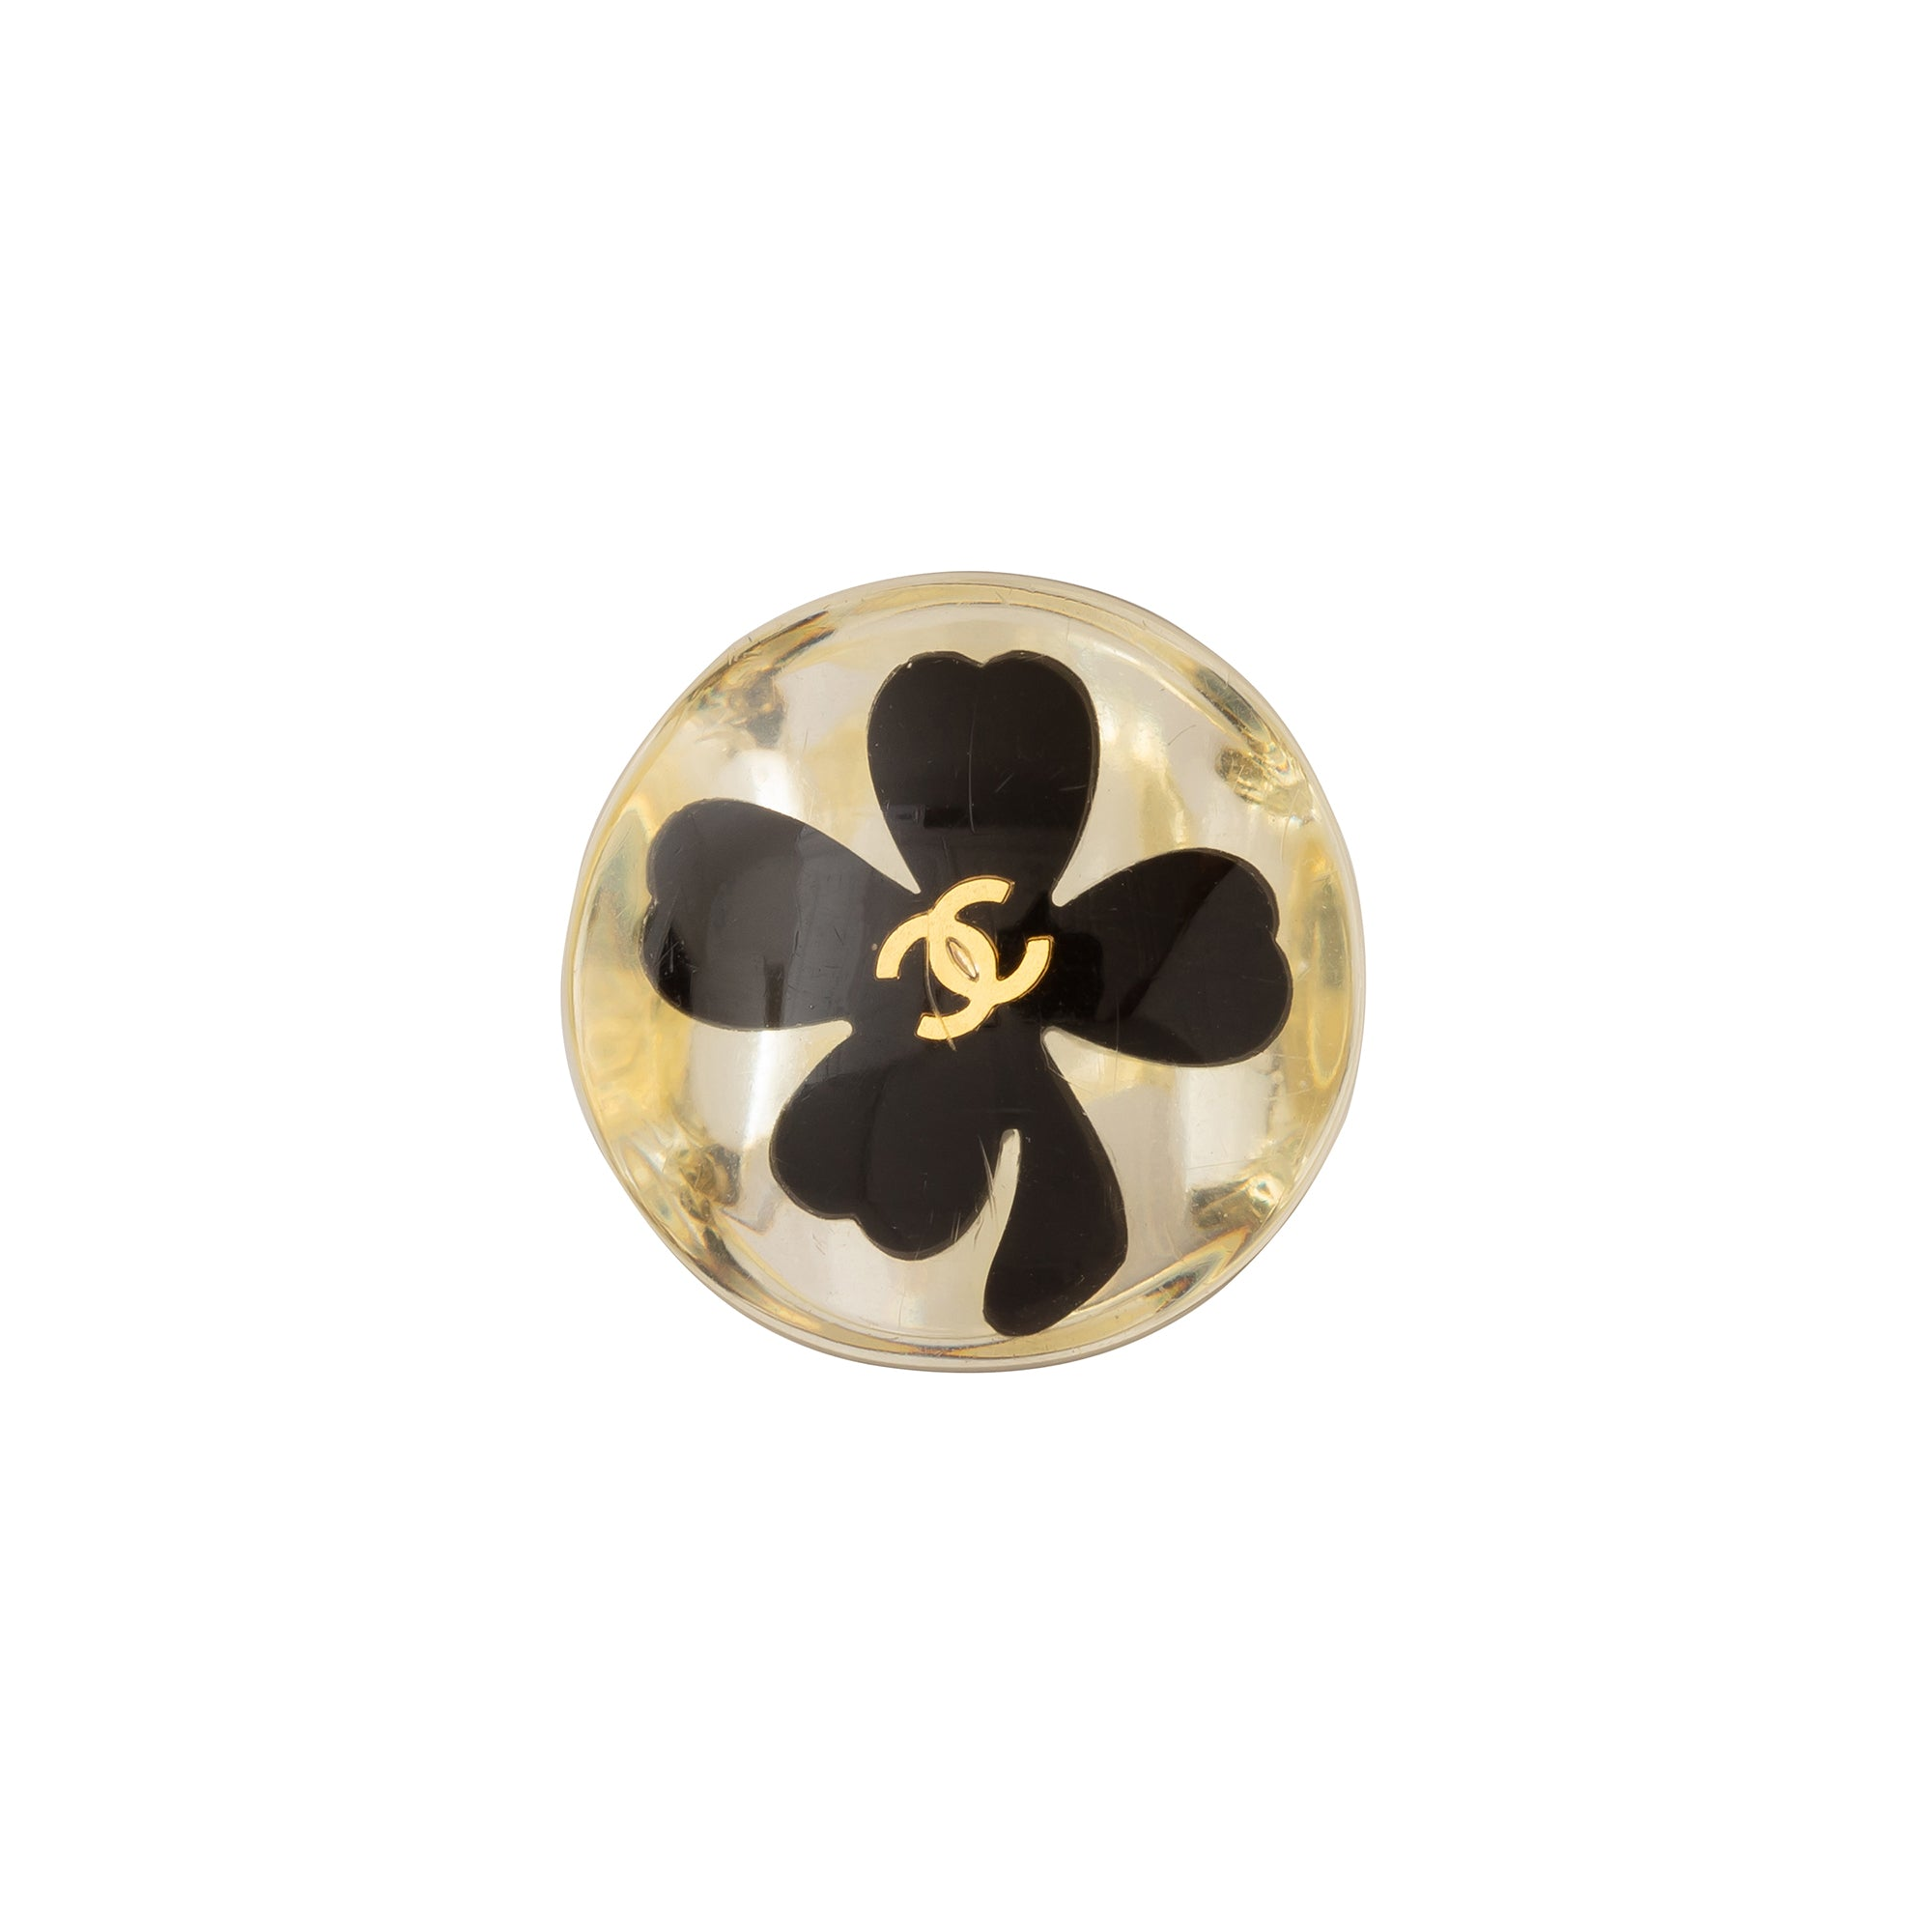 Chanel Clear Acrylic 4 Leaf Clover Logo Ring - Antique & Vintage - Rings | Broken English Jewelry